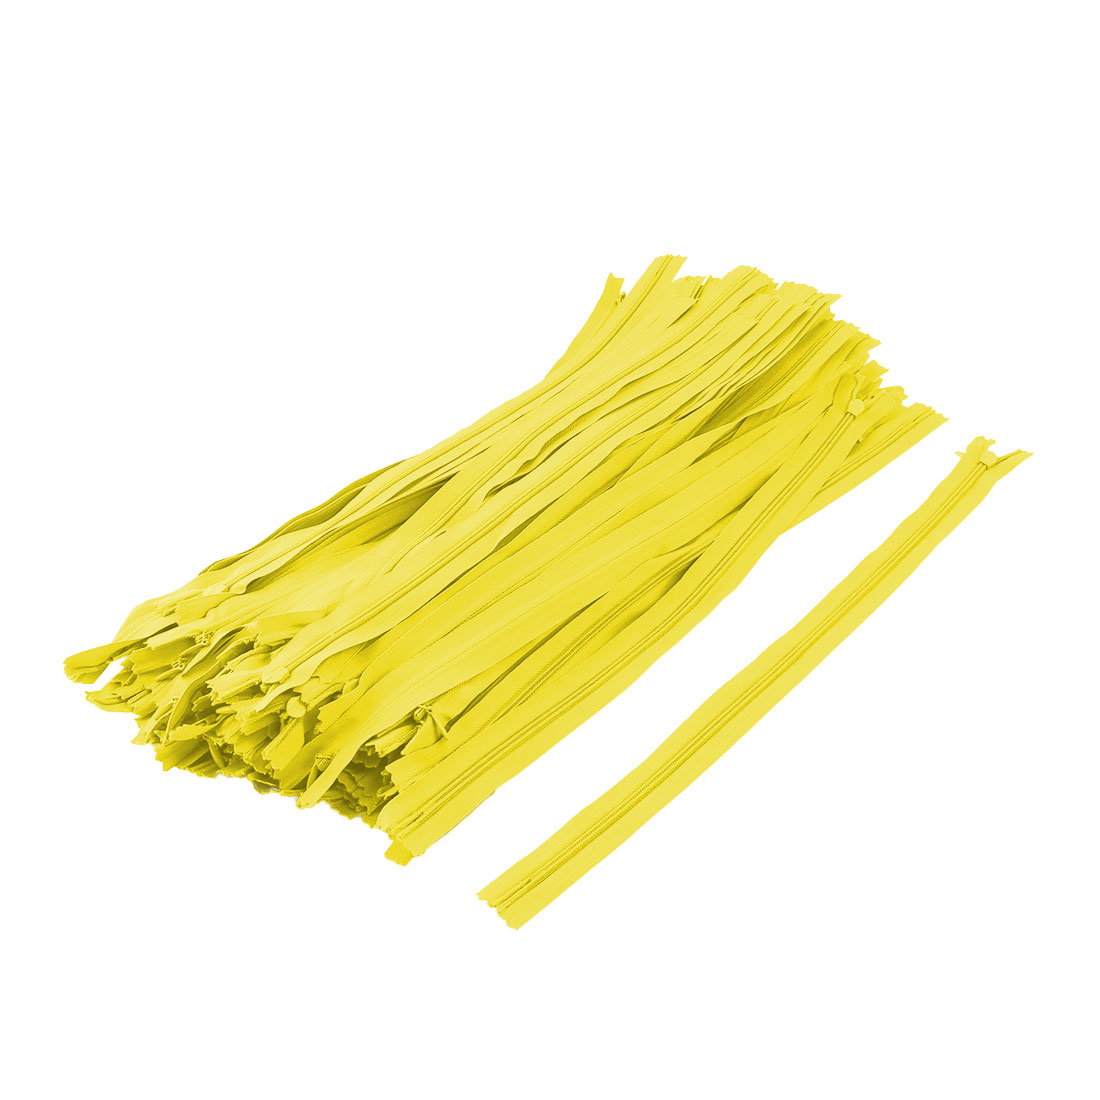 Tailor Nylon Invisible Clothes Zipper Sewing Tool Yellow 16 Inch Length 100 Pcs